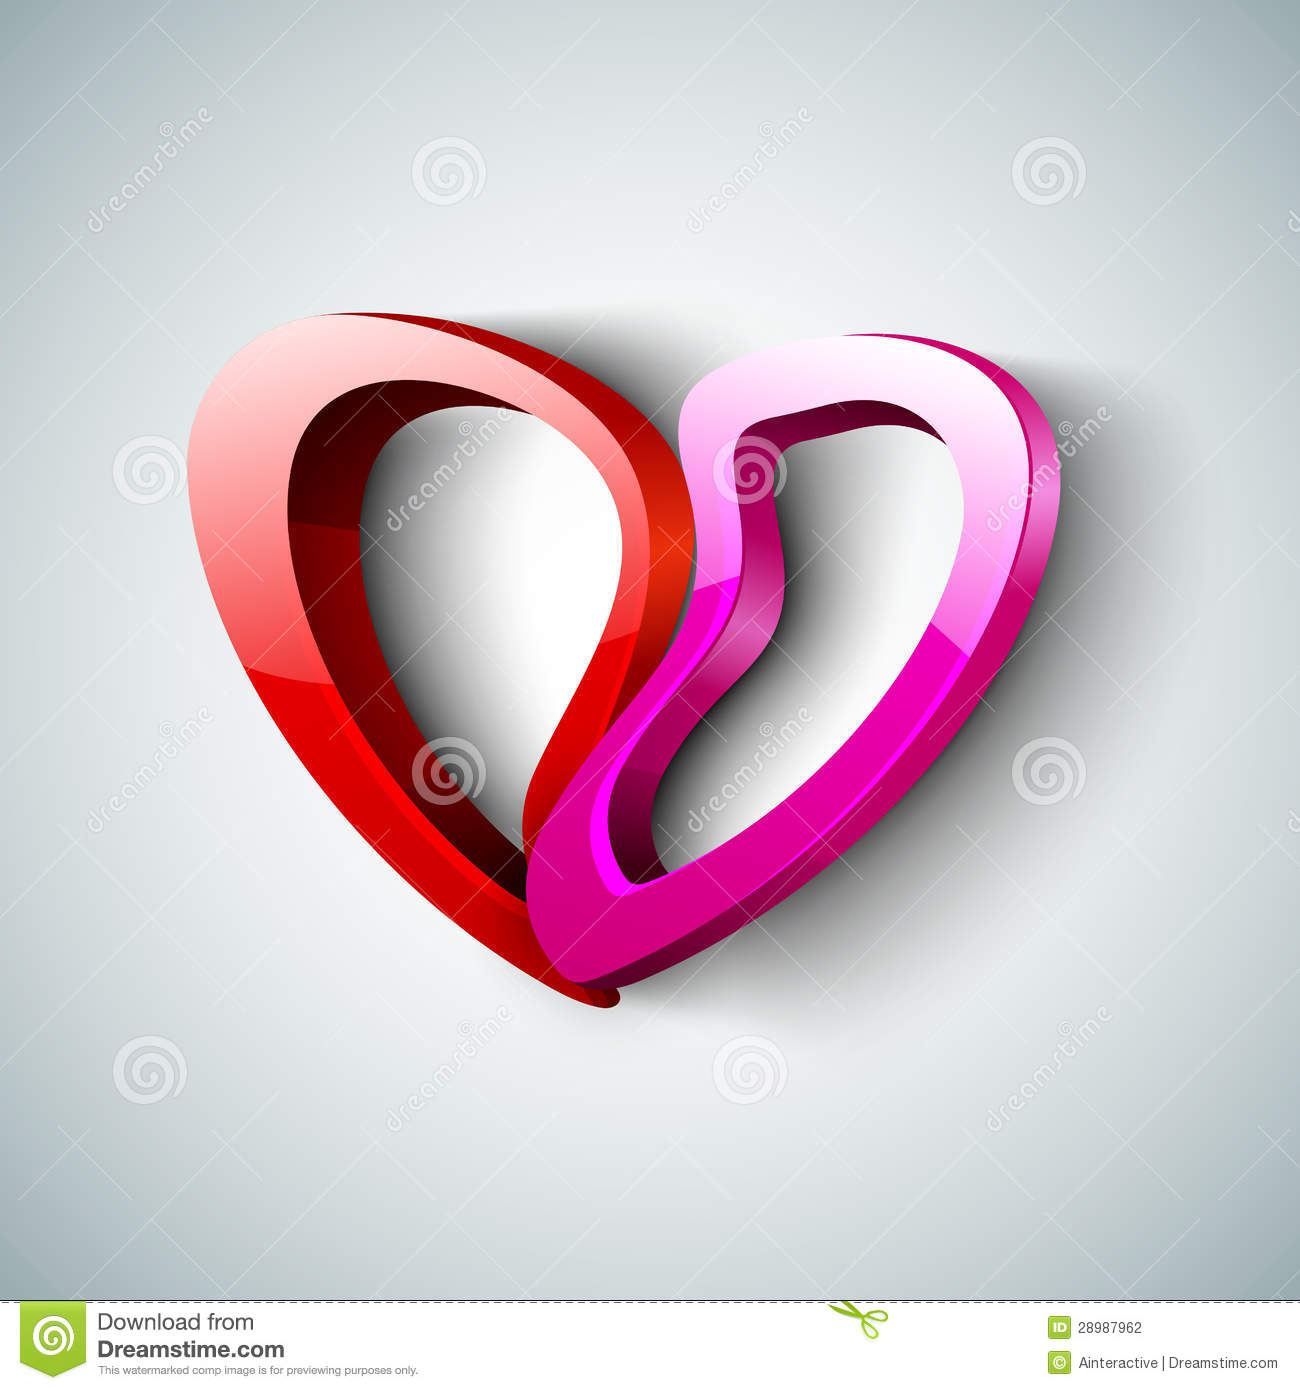 Wallpaper San Valentin 3d Beautiful St Valentine S Day Background Gift Or Greeting